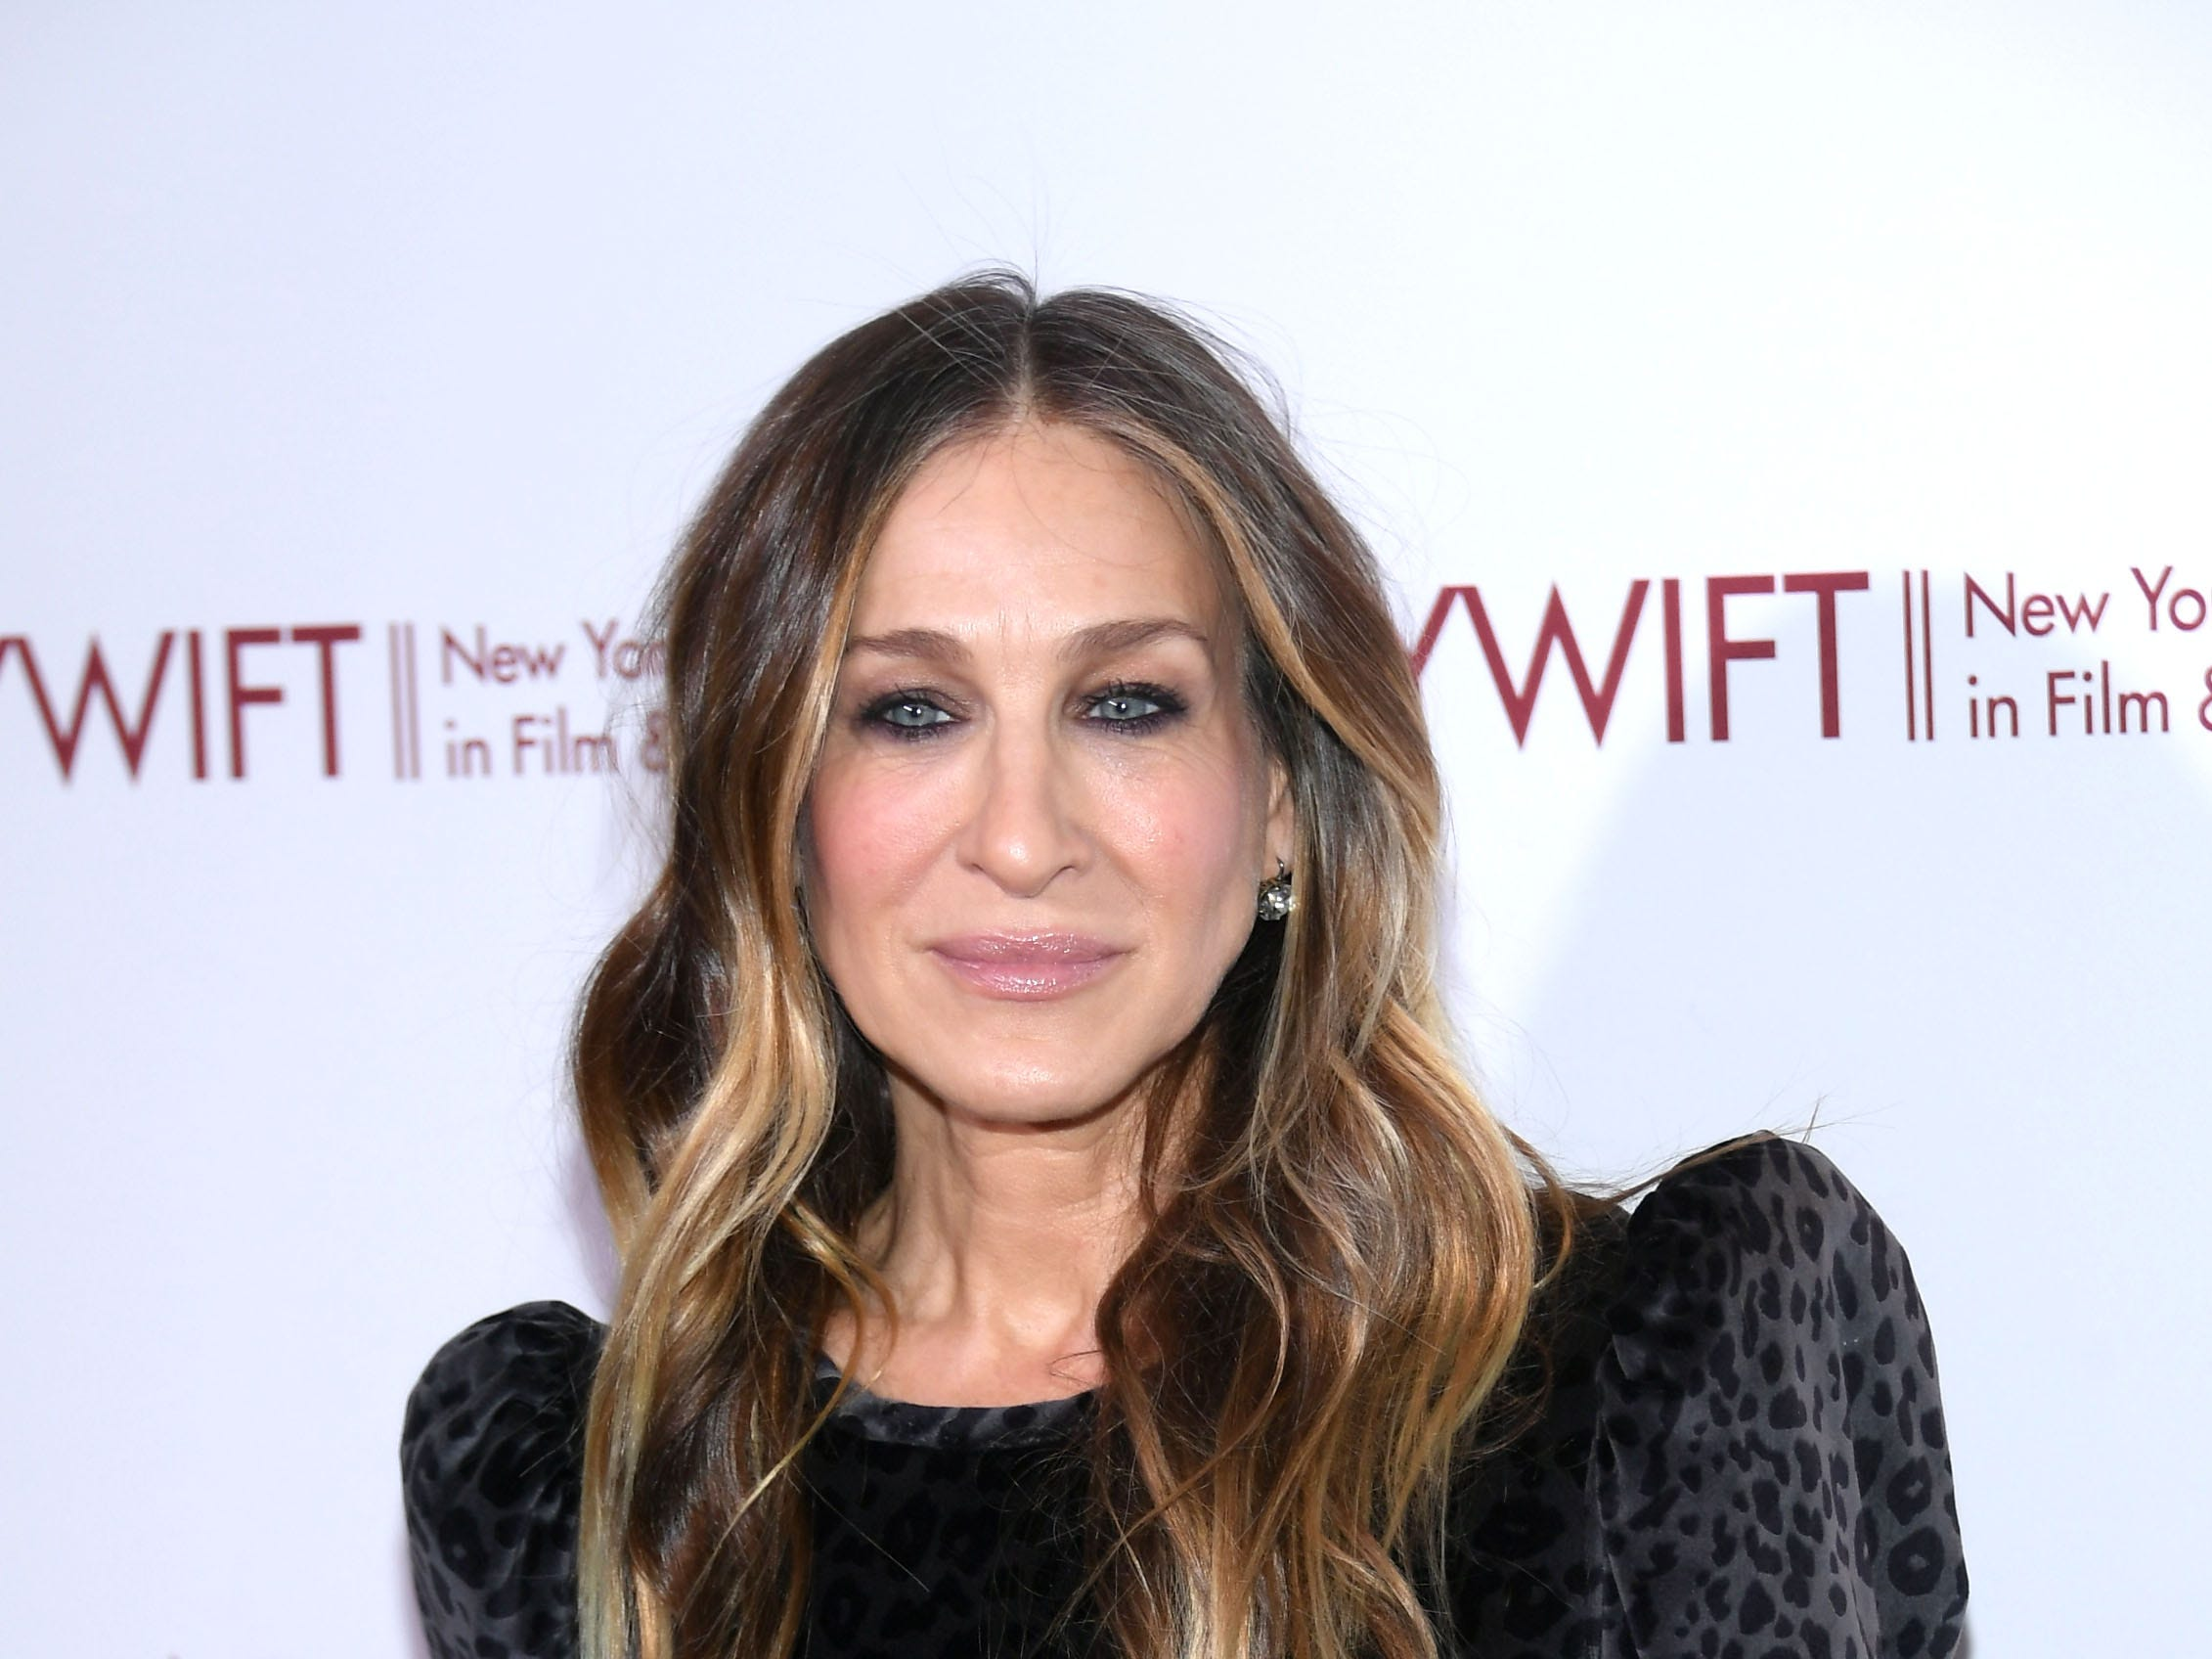 NEW YORK, NEW YORK - DECEMBER 13: Actress Sarah Jessica Parker attends the 39th Annual Muse Awards at The New York Hilton Midtown on December 13, 2018 in New York City. (Photo by Mike Coppola/Getty Images) ORG XMIT: 775269114 ORIG FILE ID: 1082052868